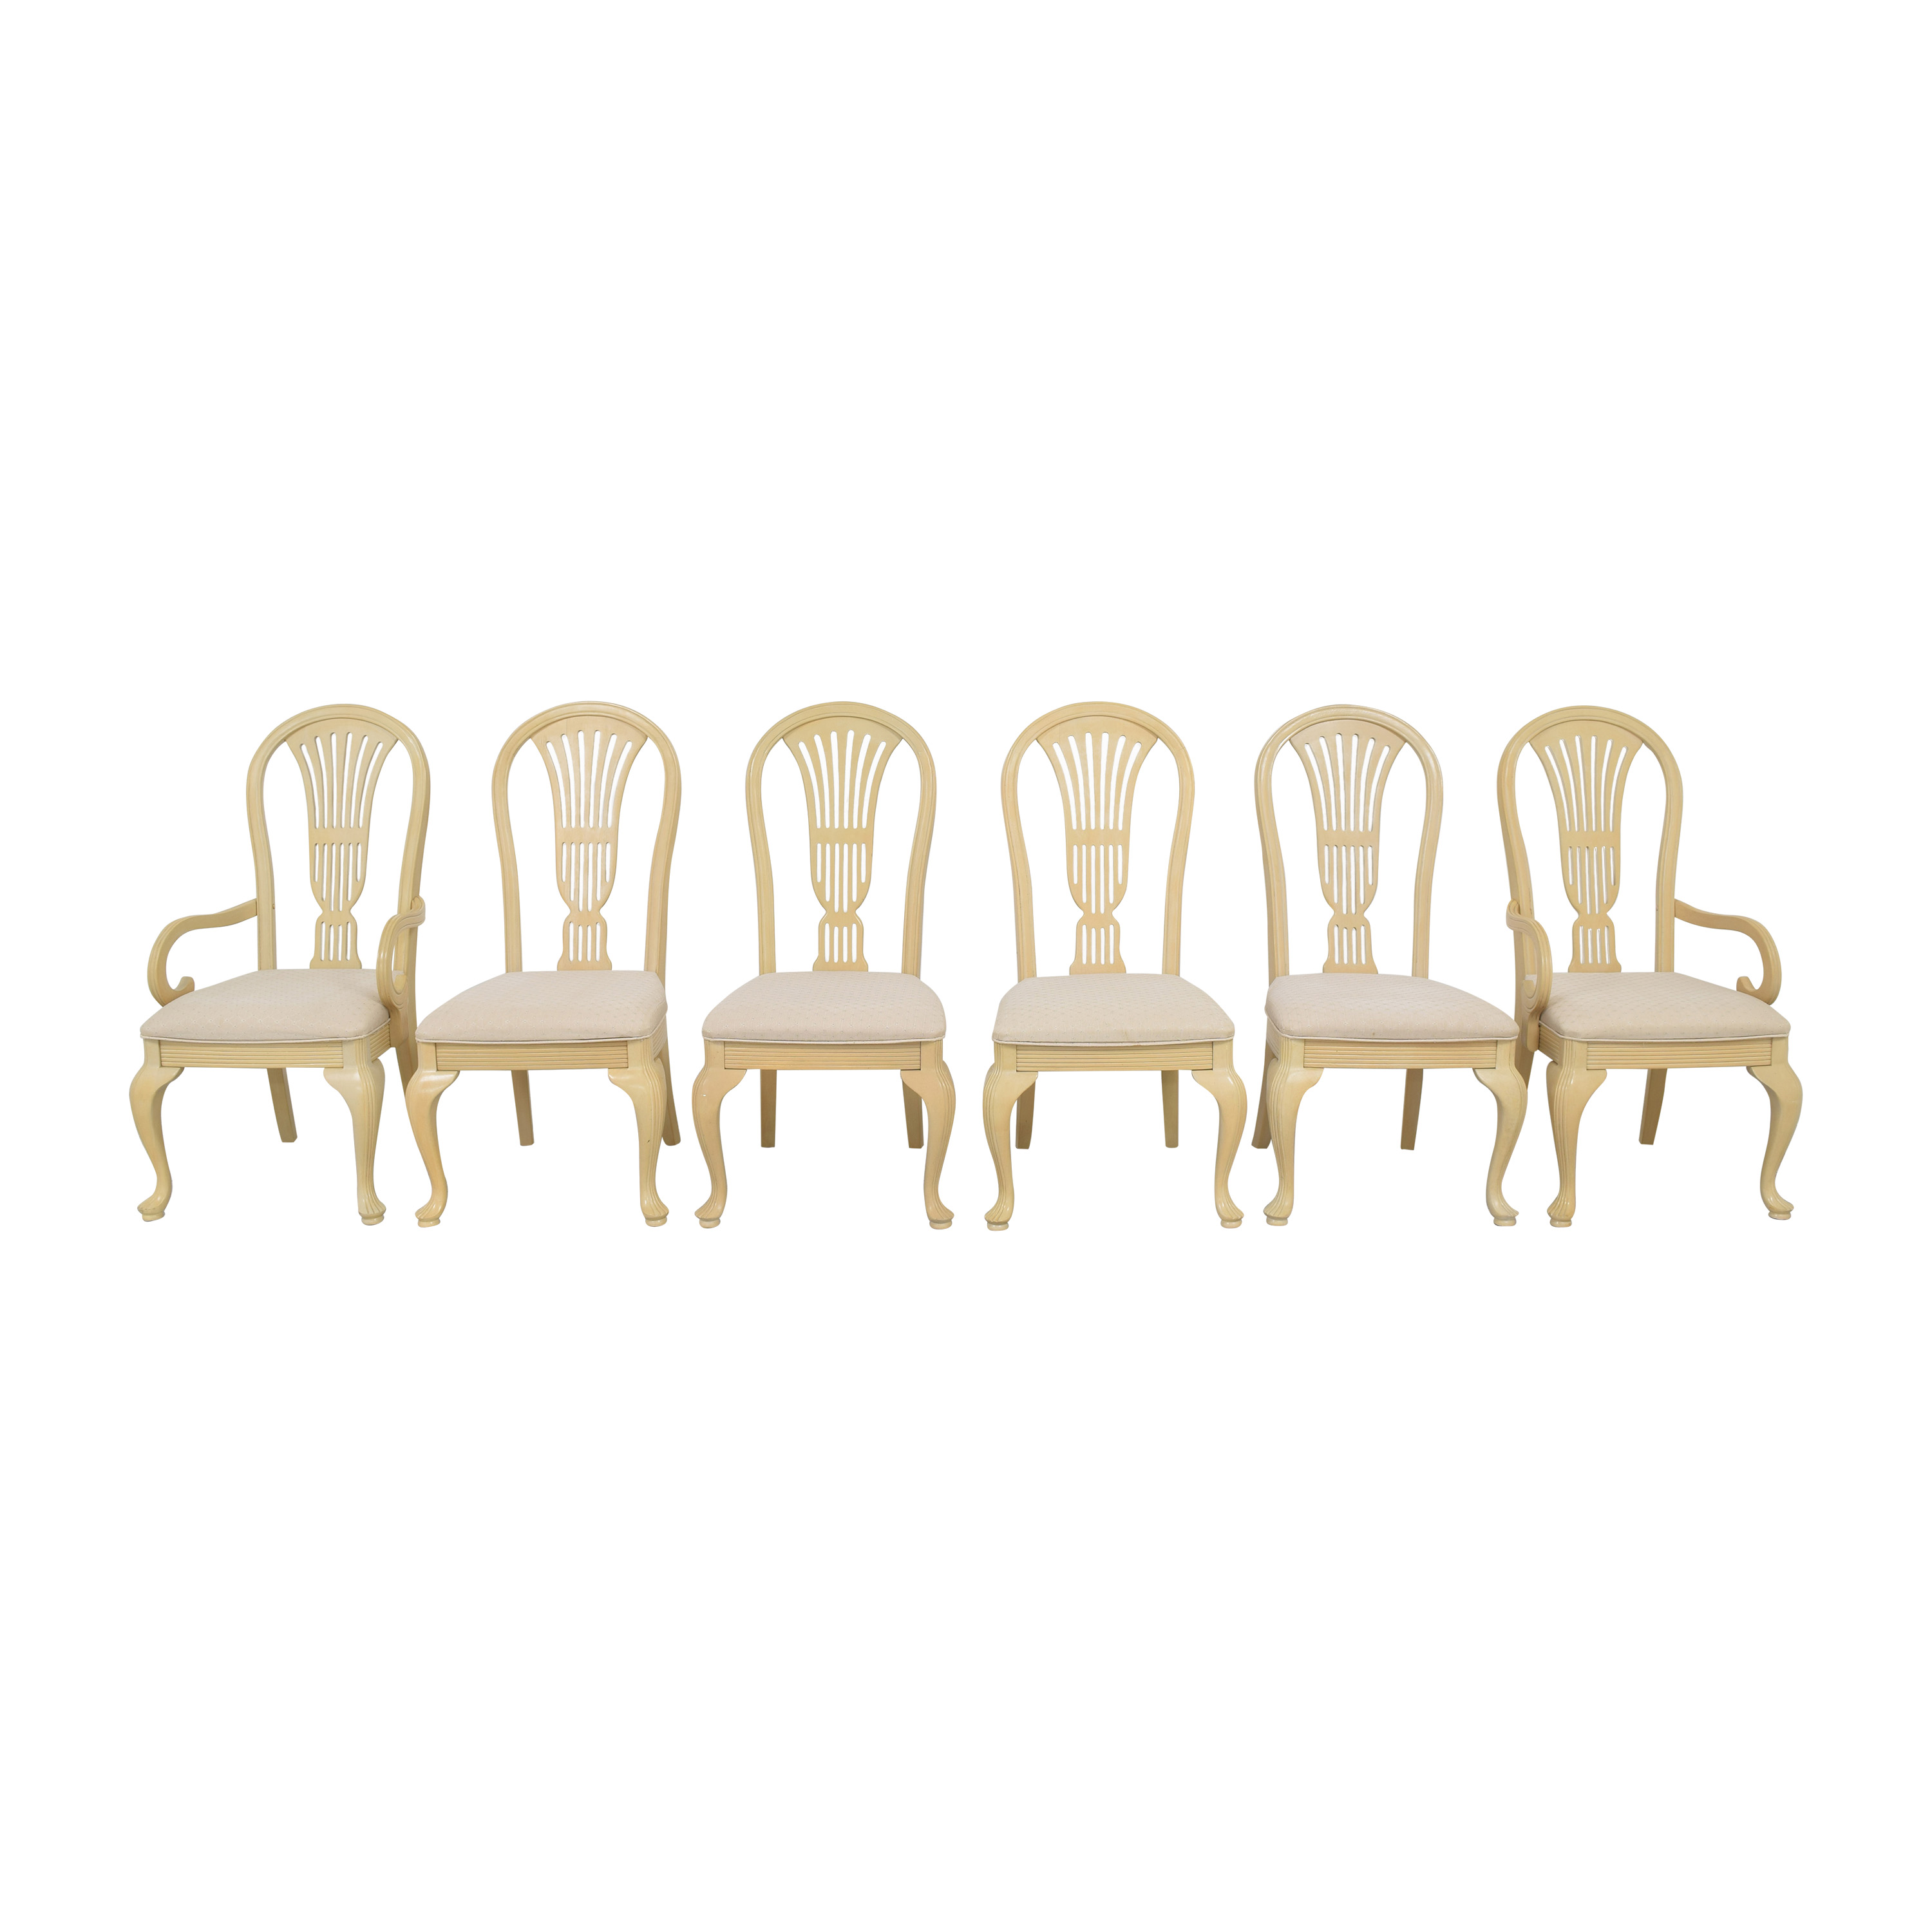 Universal Furniture Upholstered Dining Chairs Universal Furniture